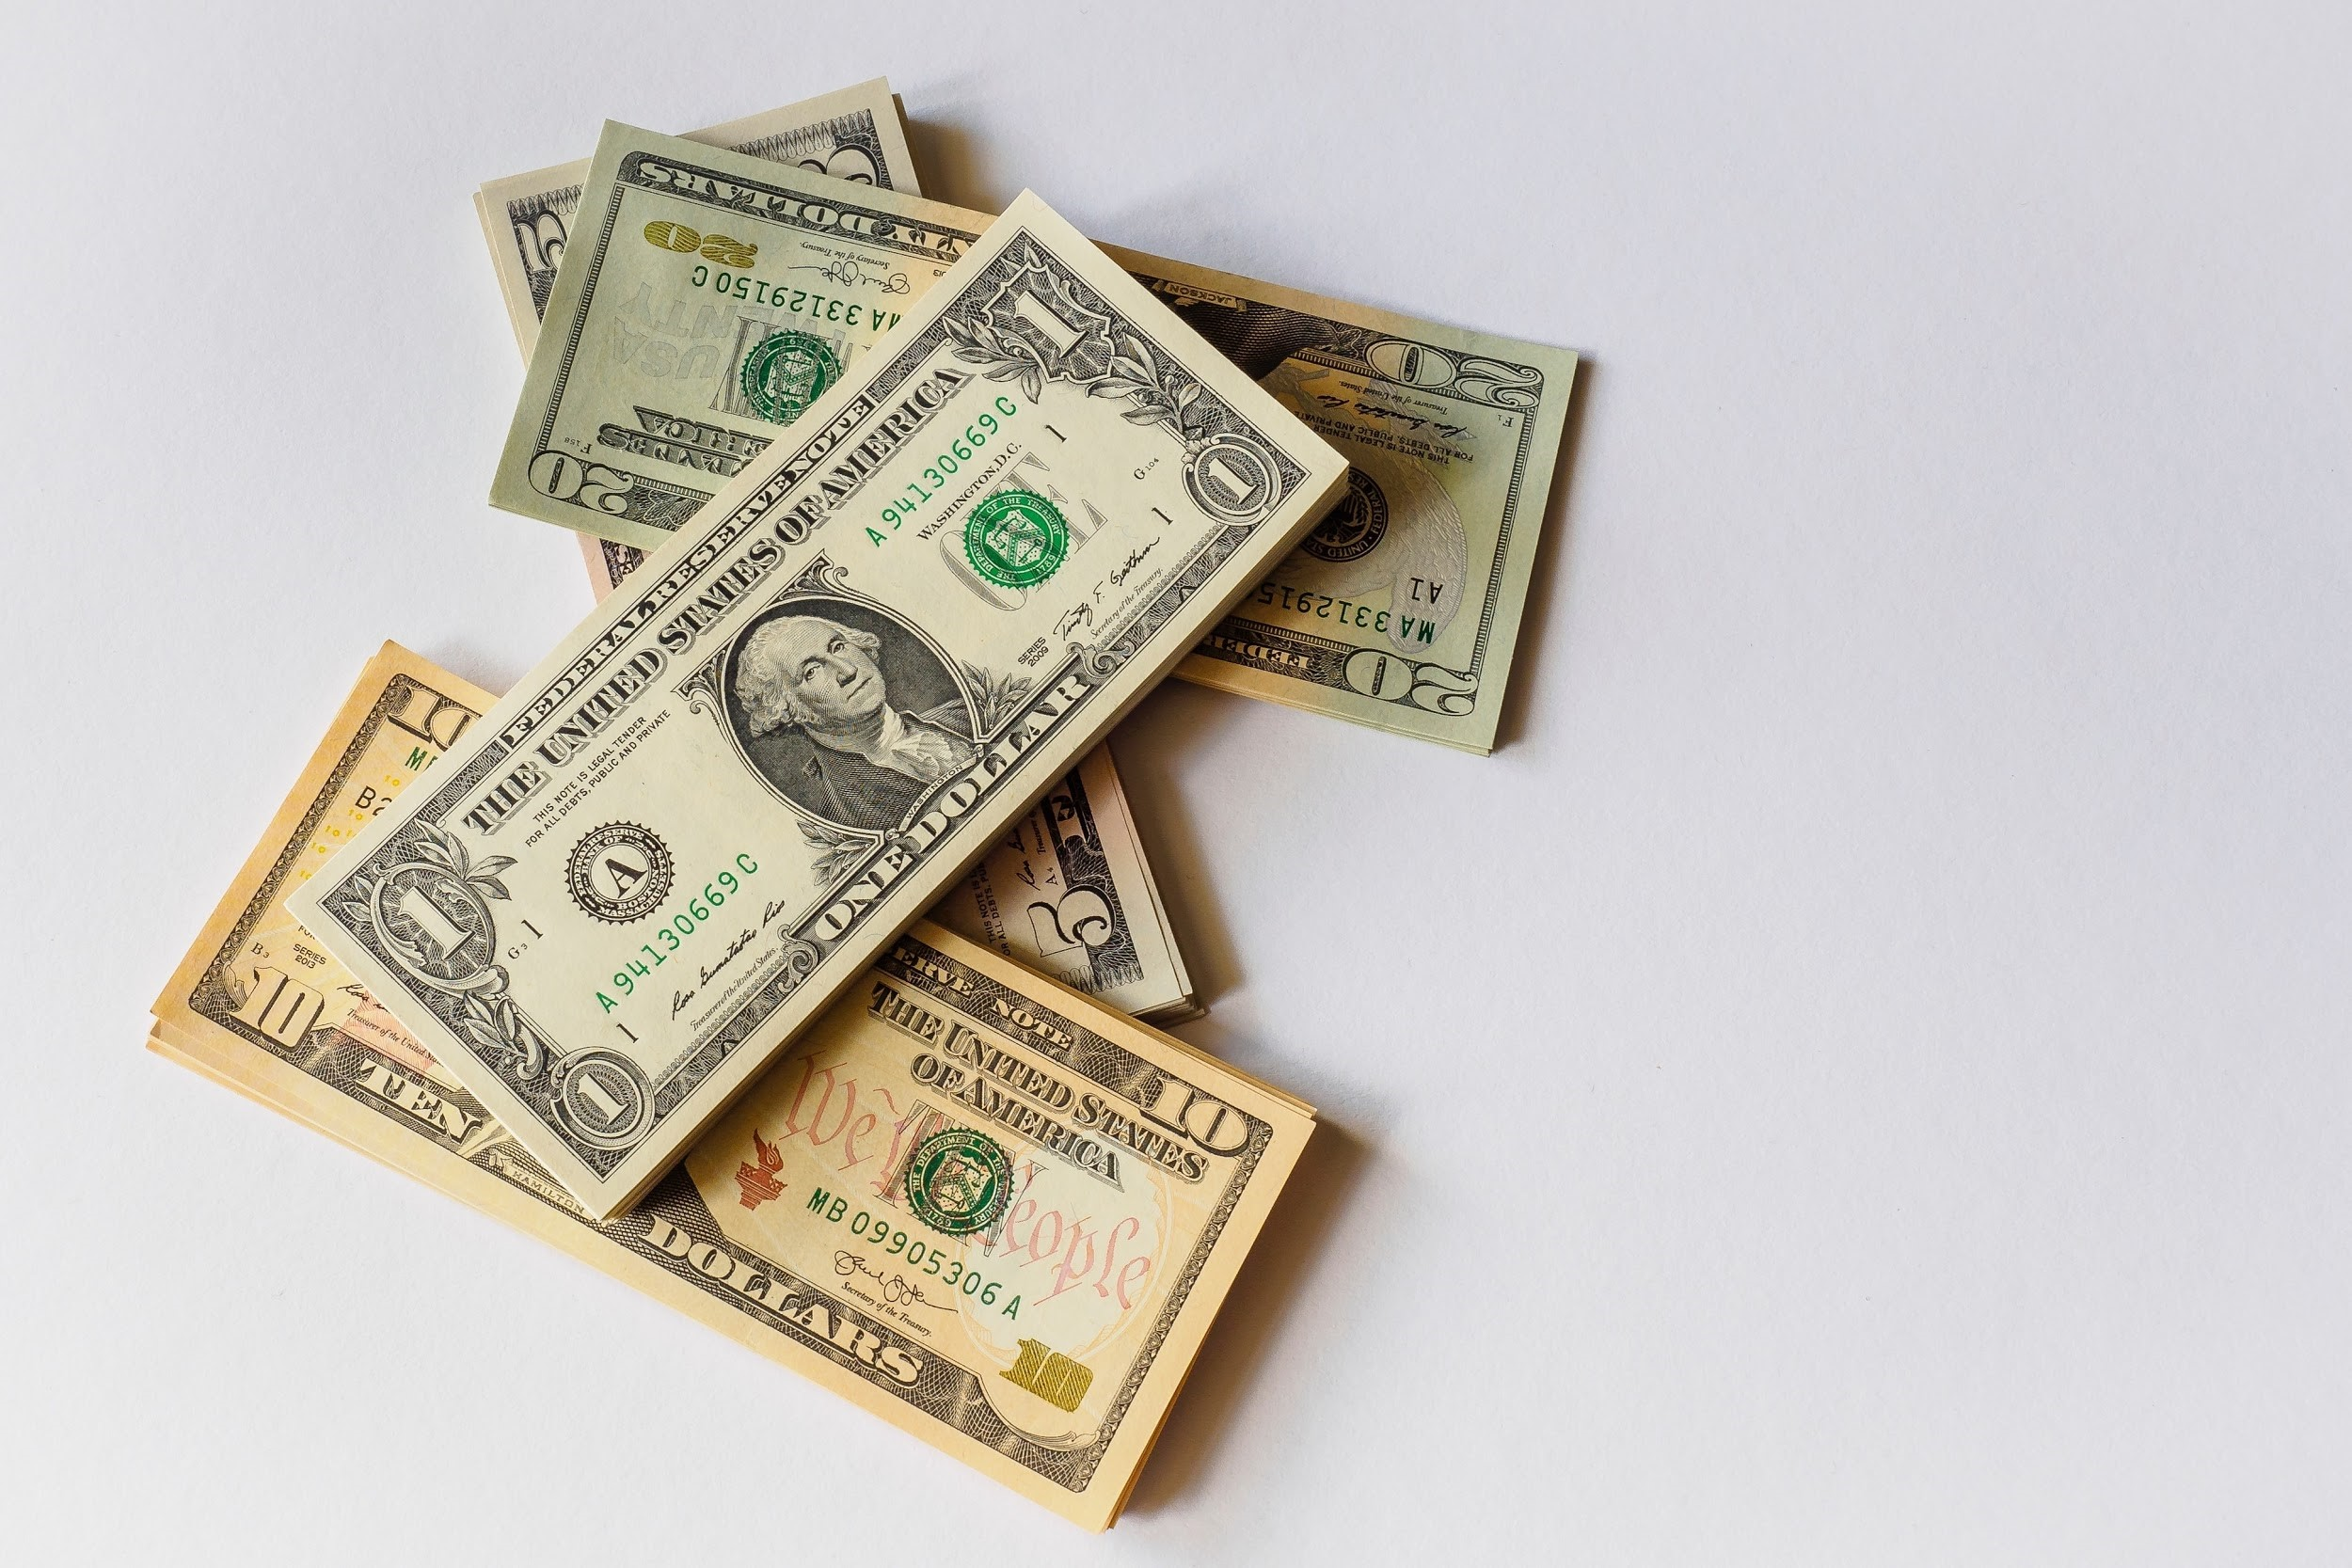 Personal Injury: Who pays?